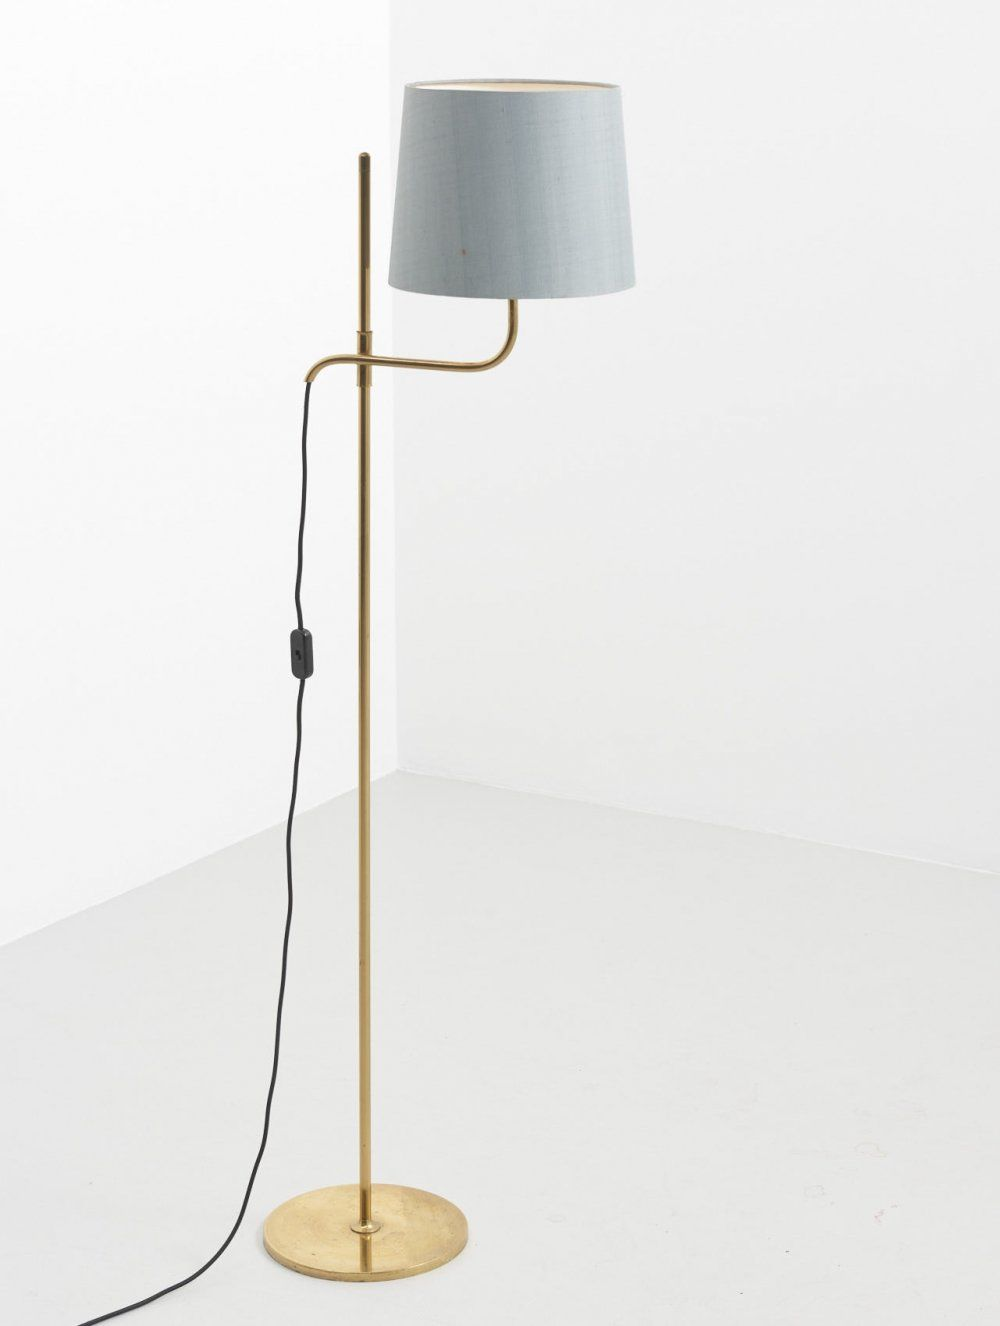 For Sale Floor Lamp In Brass By Florian Schulz 1960s Lamp Floor Lamp Floor Lamp Lighting